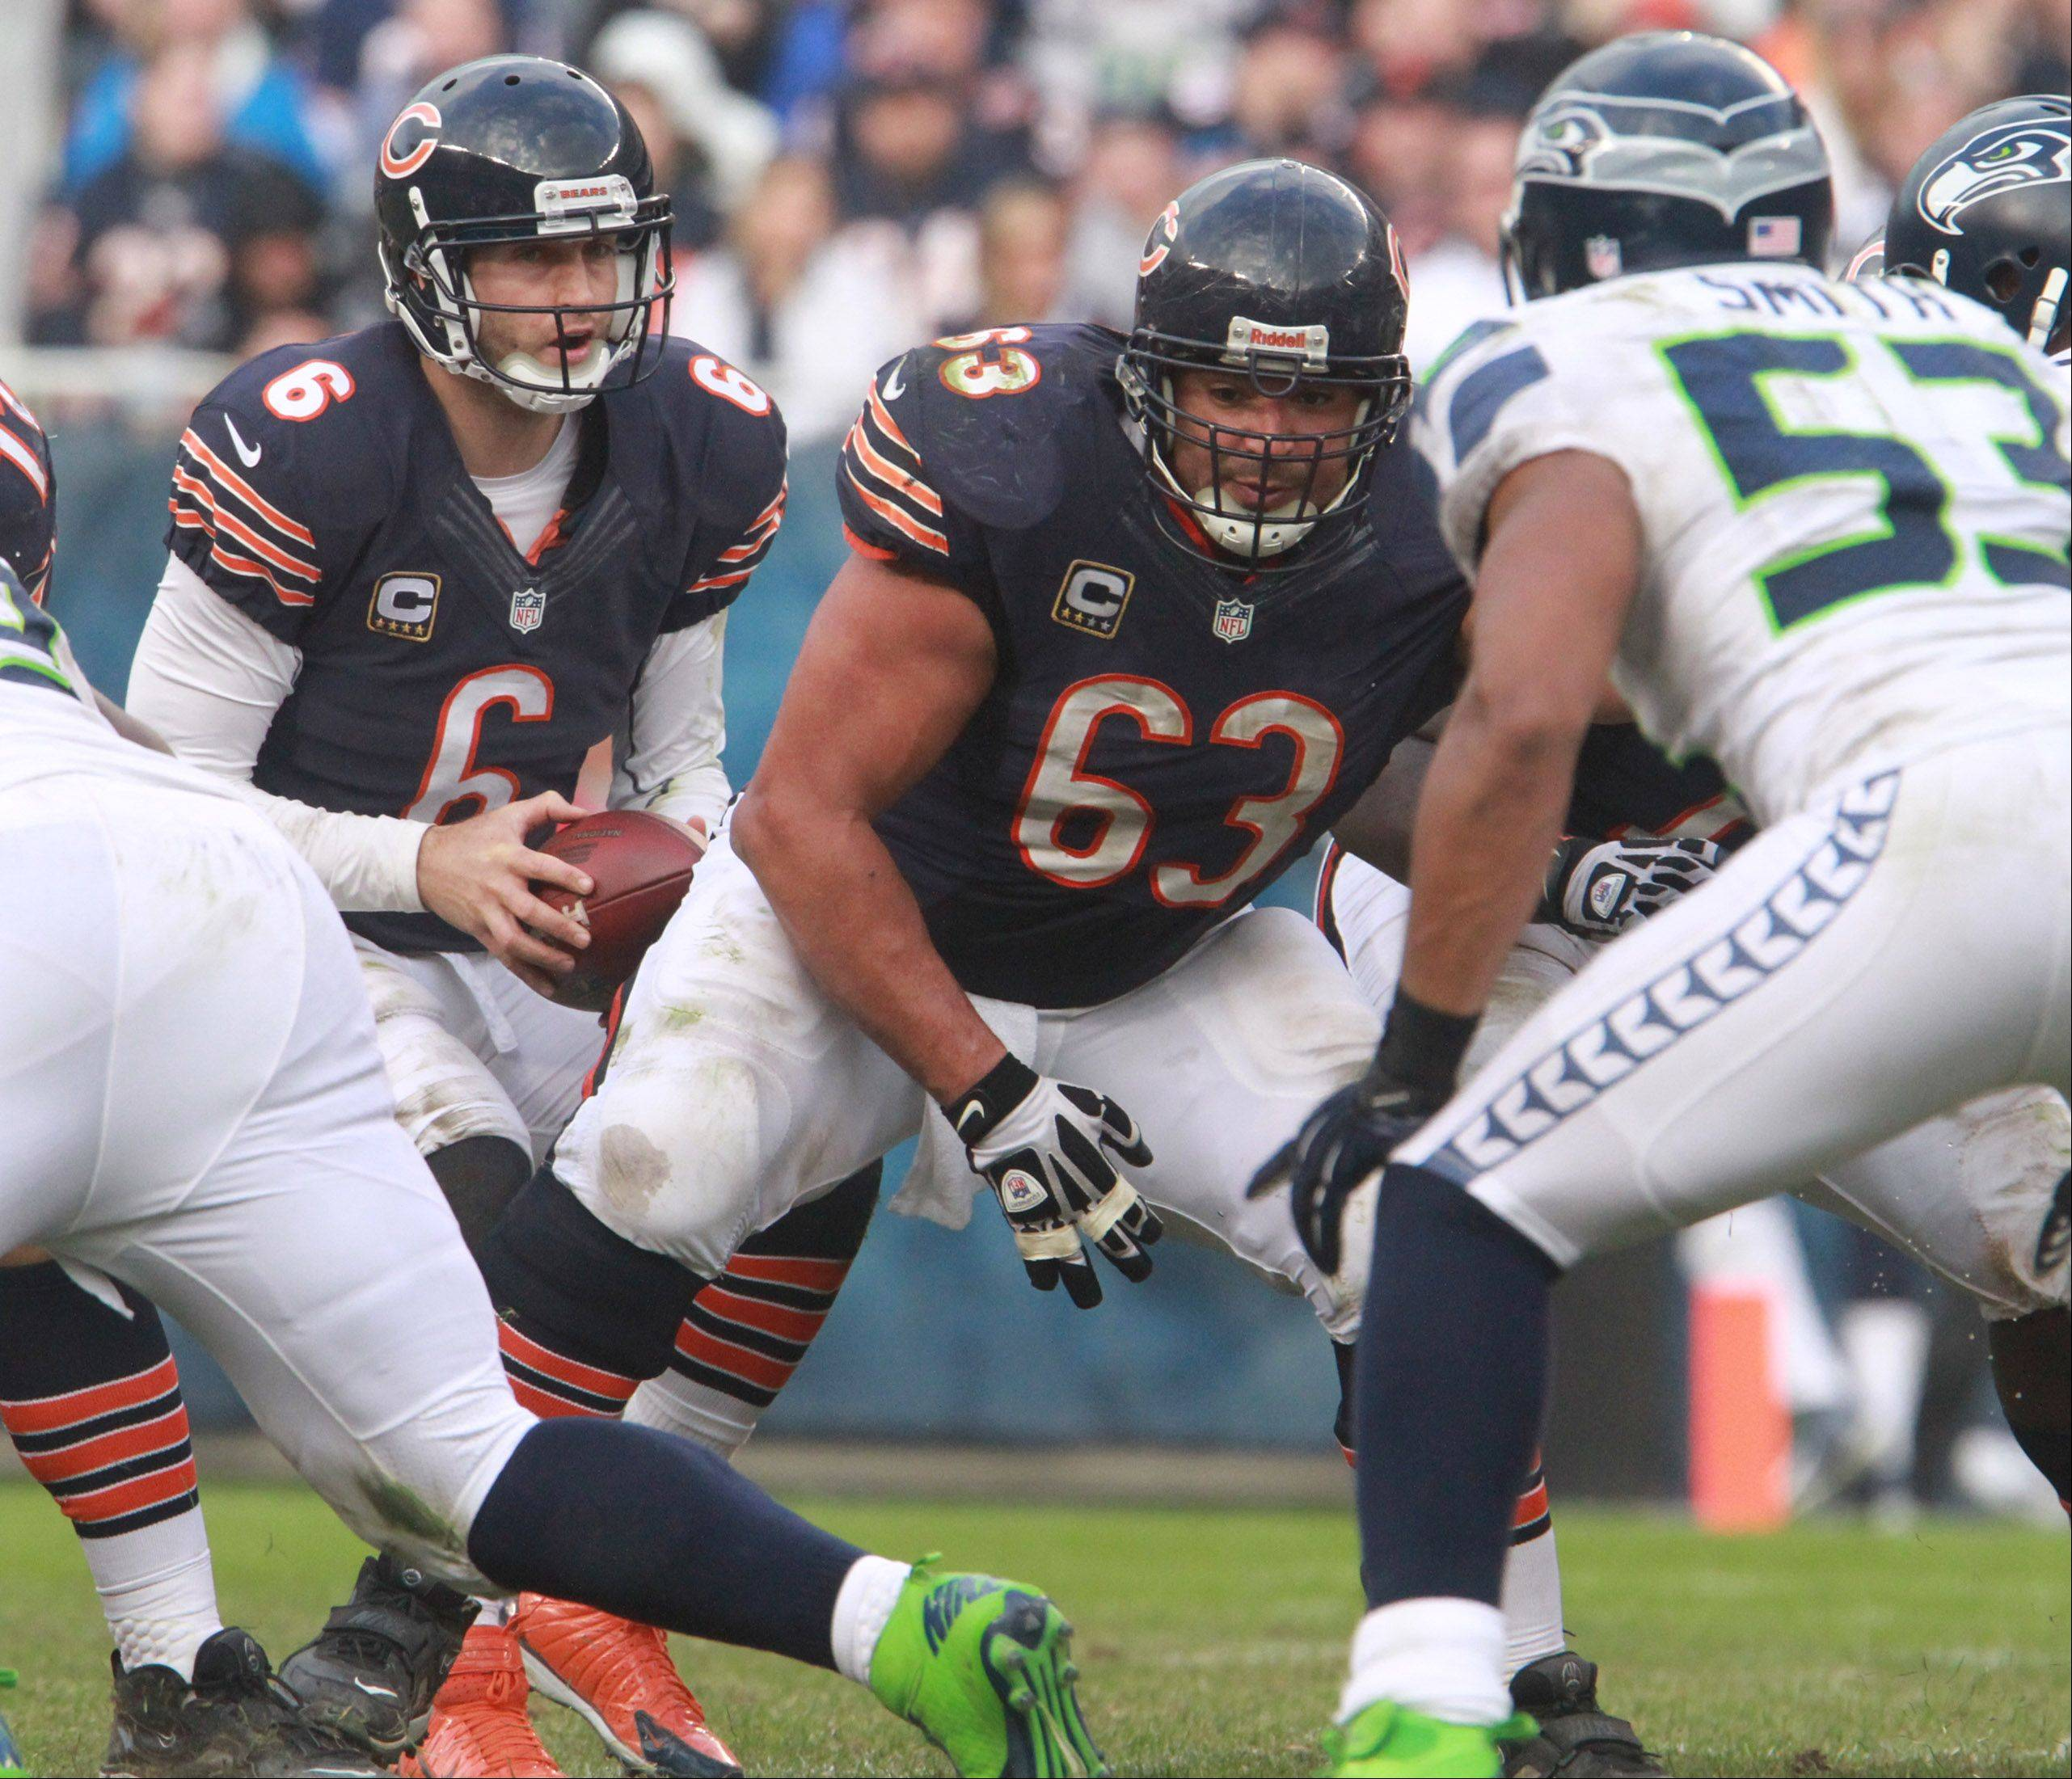 Chicago Bears center Roberto Garza blocks after Cutler takes the snap against Seahawks at Soldier Field on Sunday.